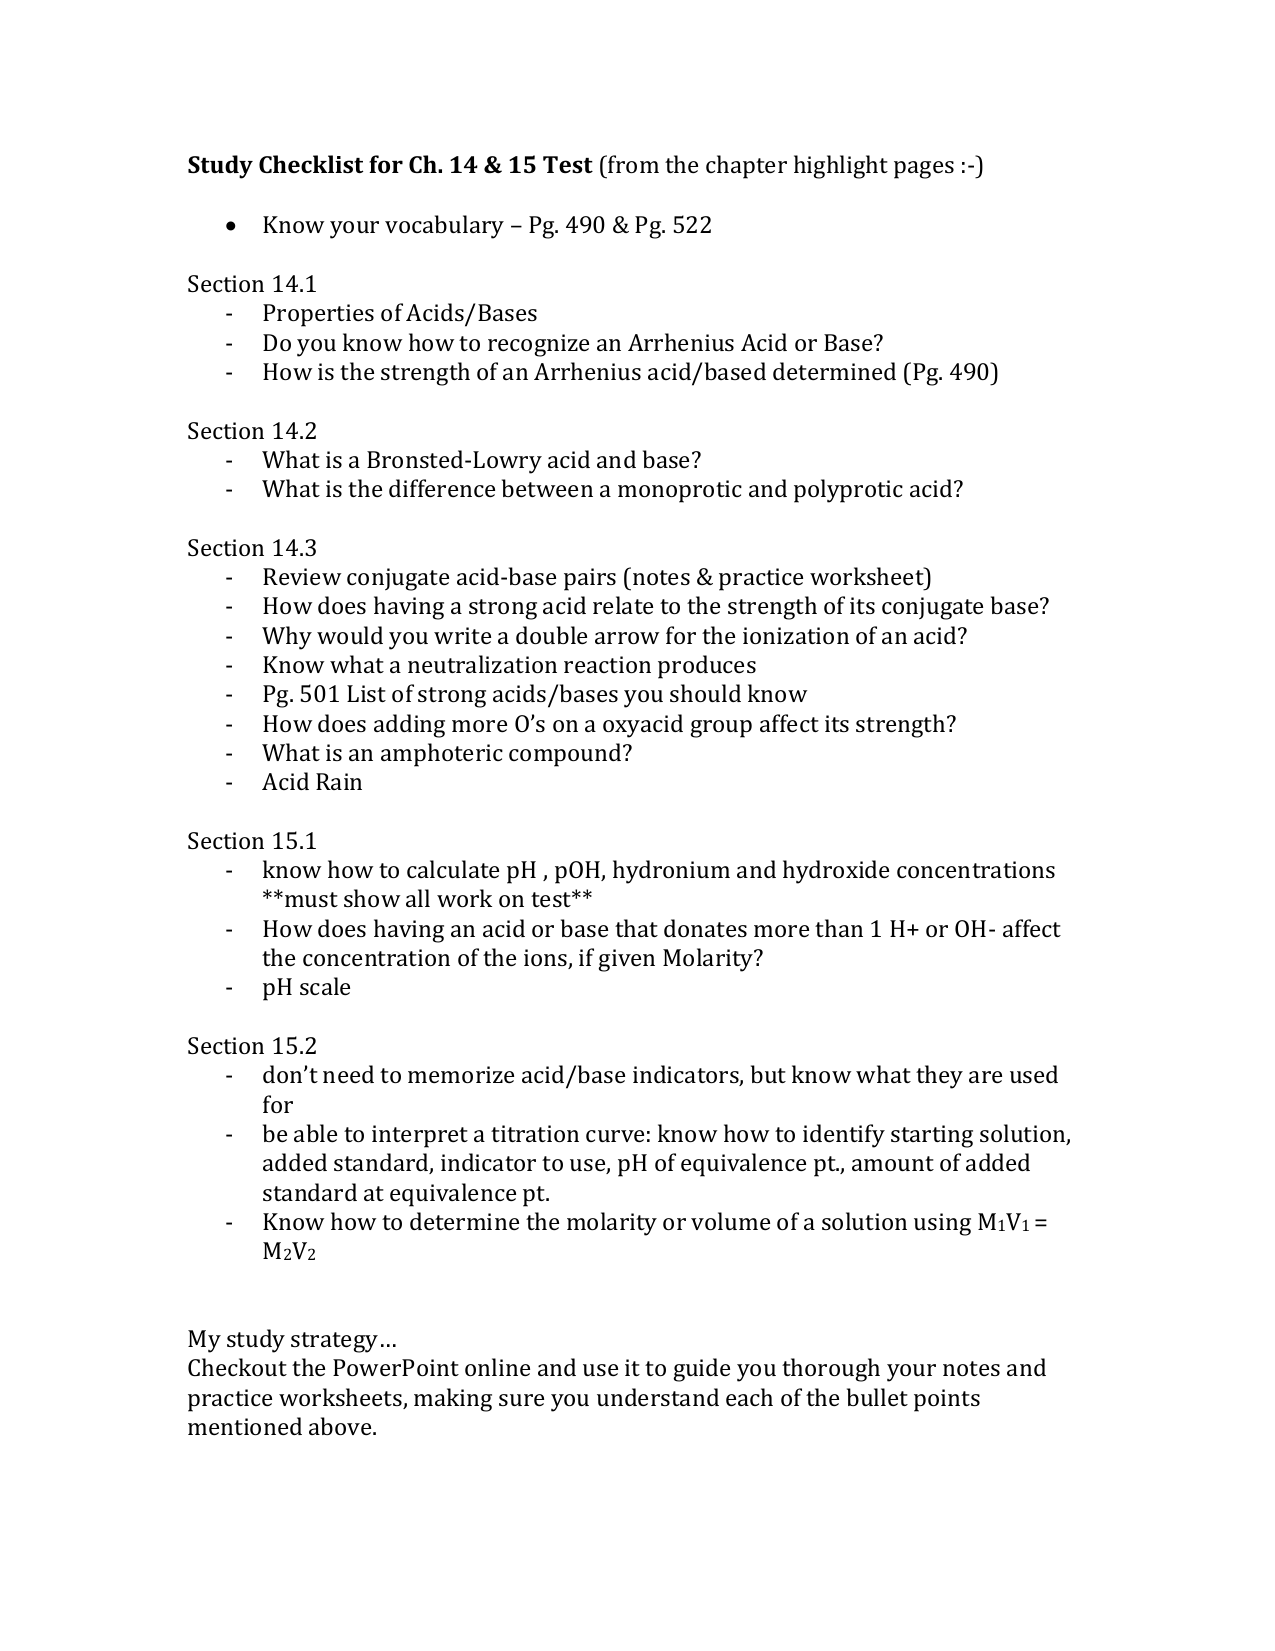 Ch 1415 Checklist – Ph and Acid Rain Worksheet